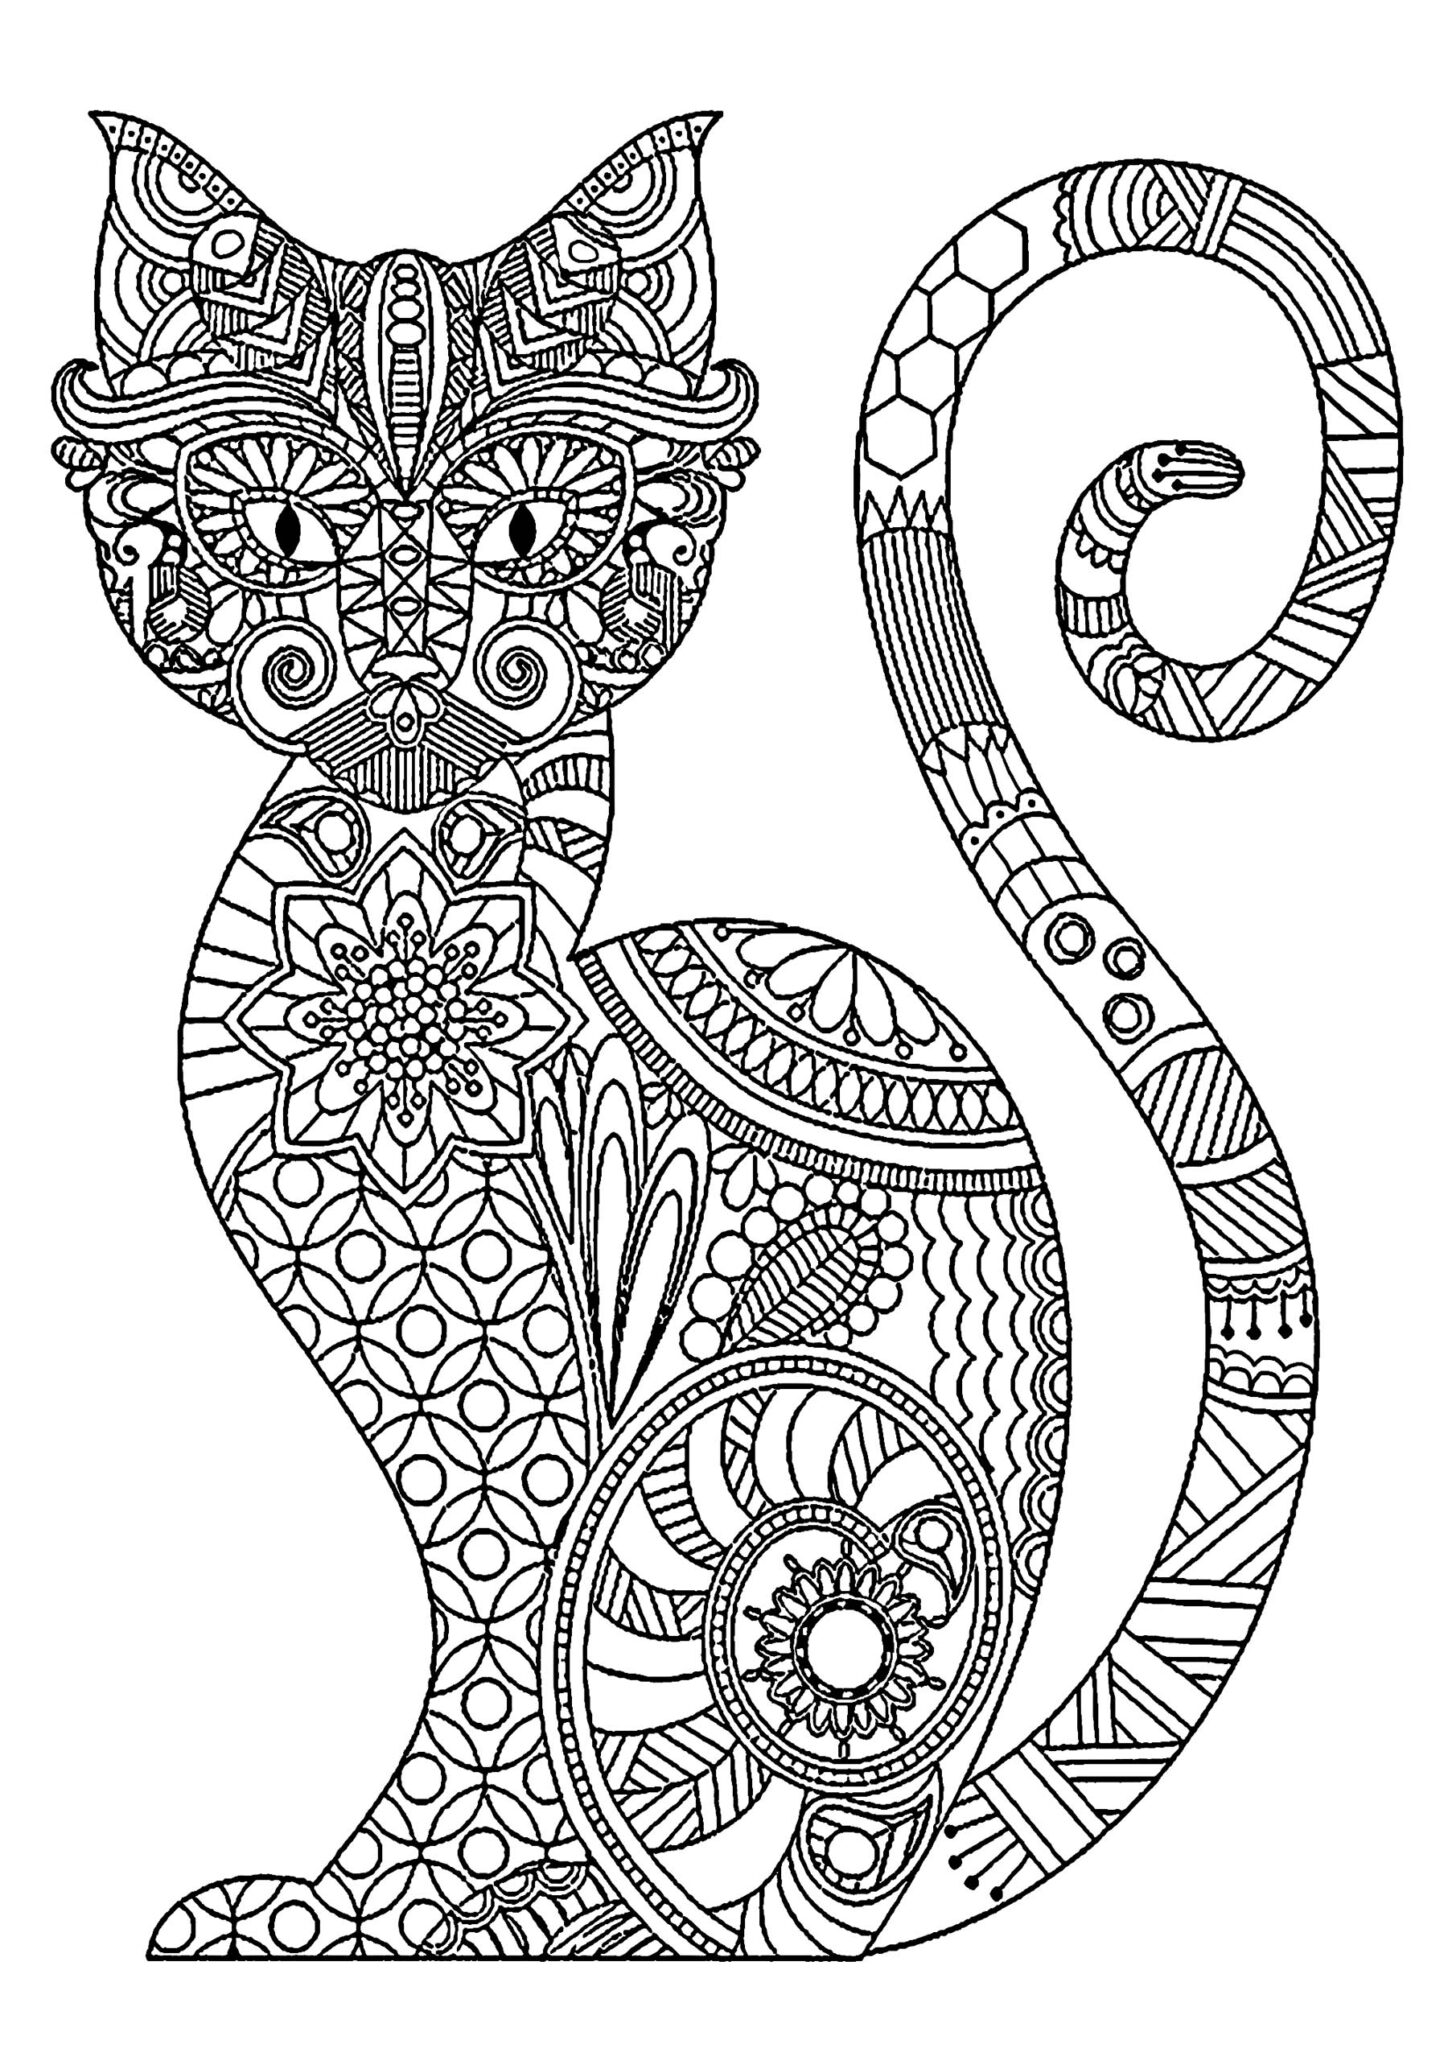 Cats coloring pages for adult